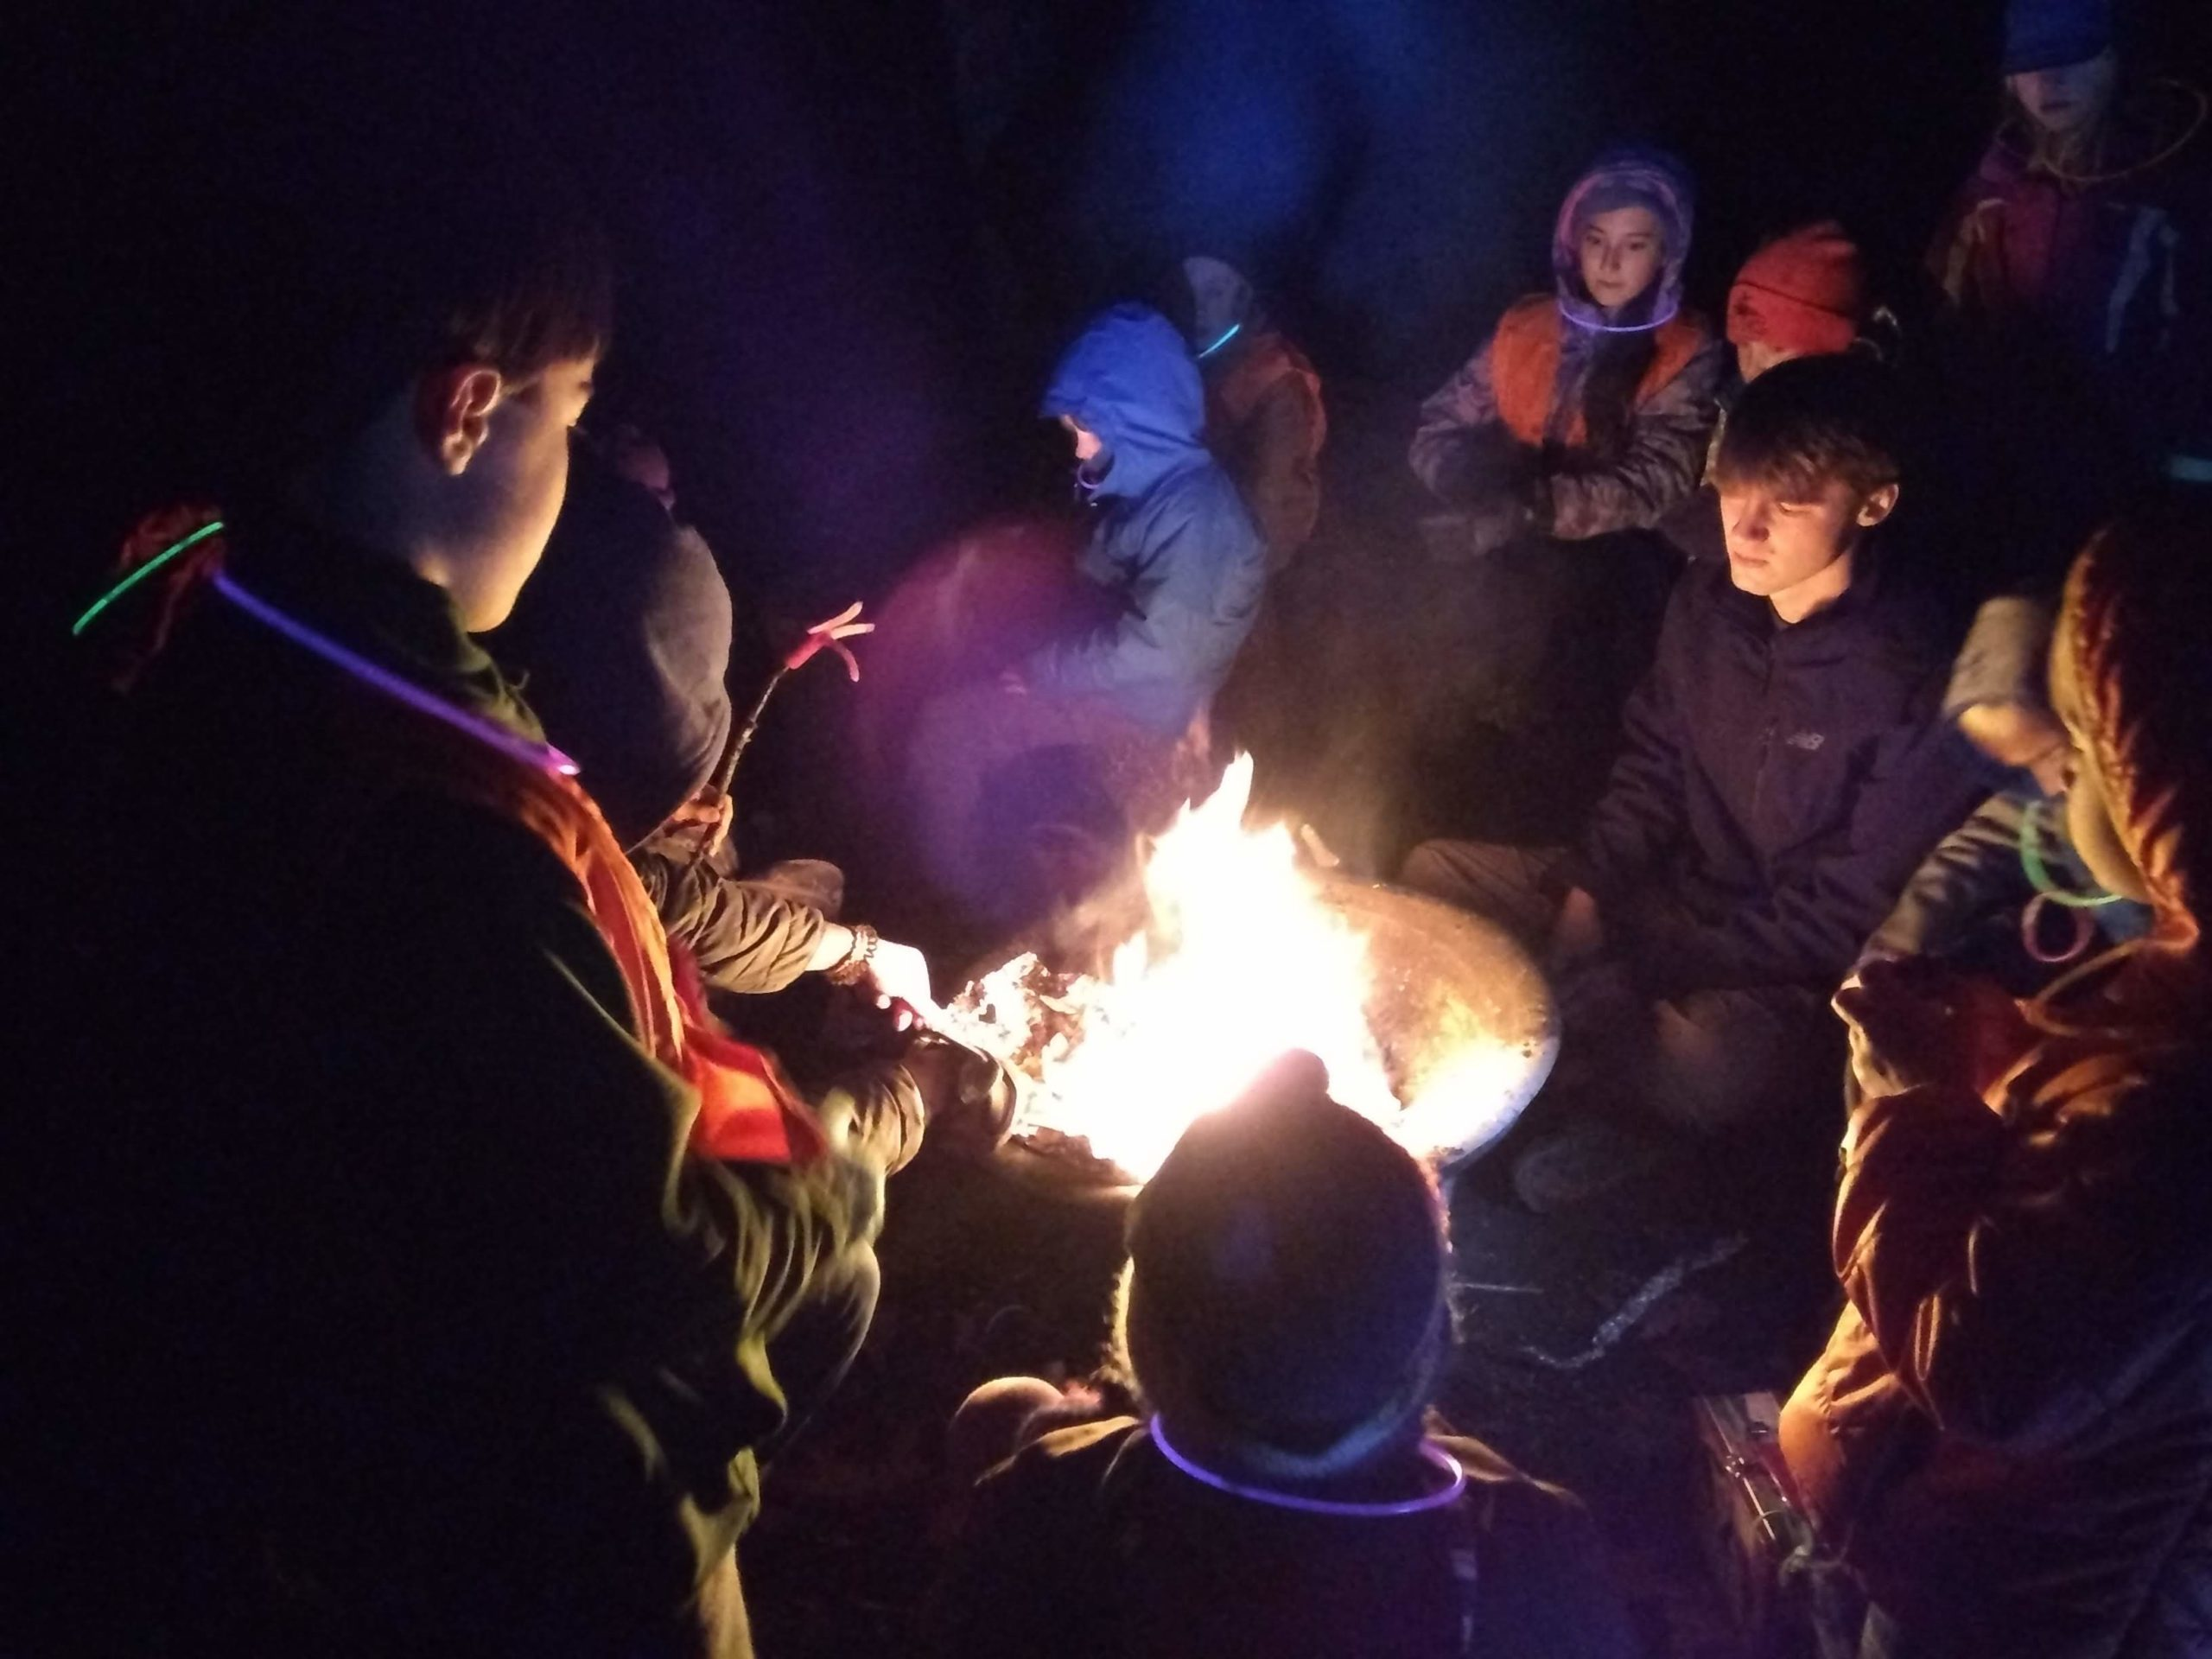 Capture the Glowstick – Jan 25 – TimberNook of Greater Portland, Maine